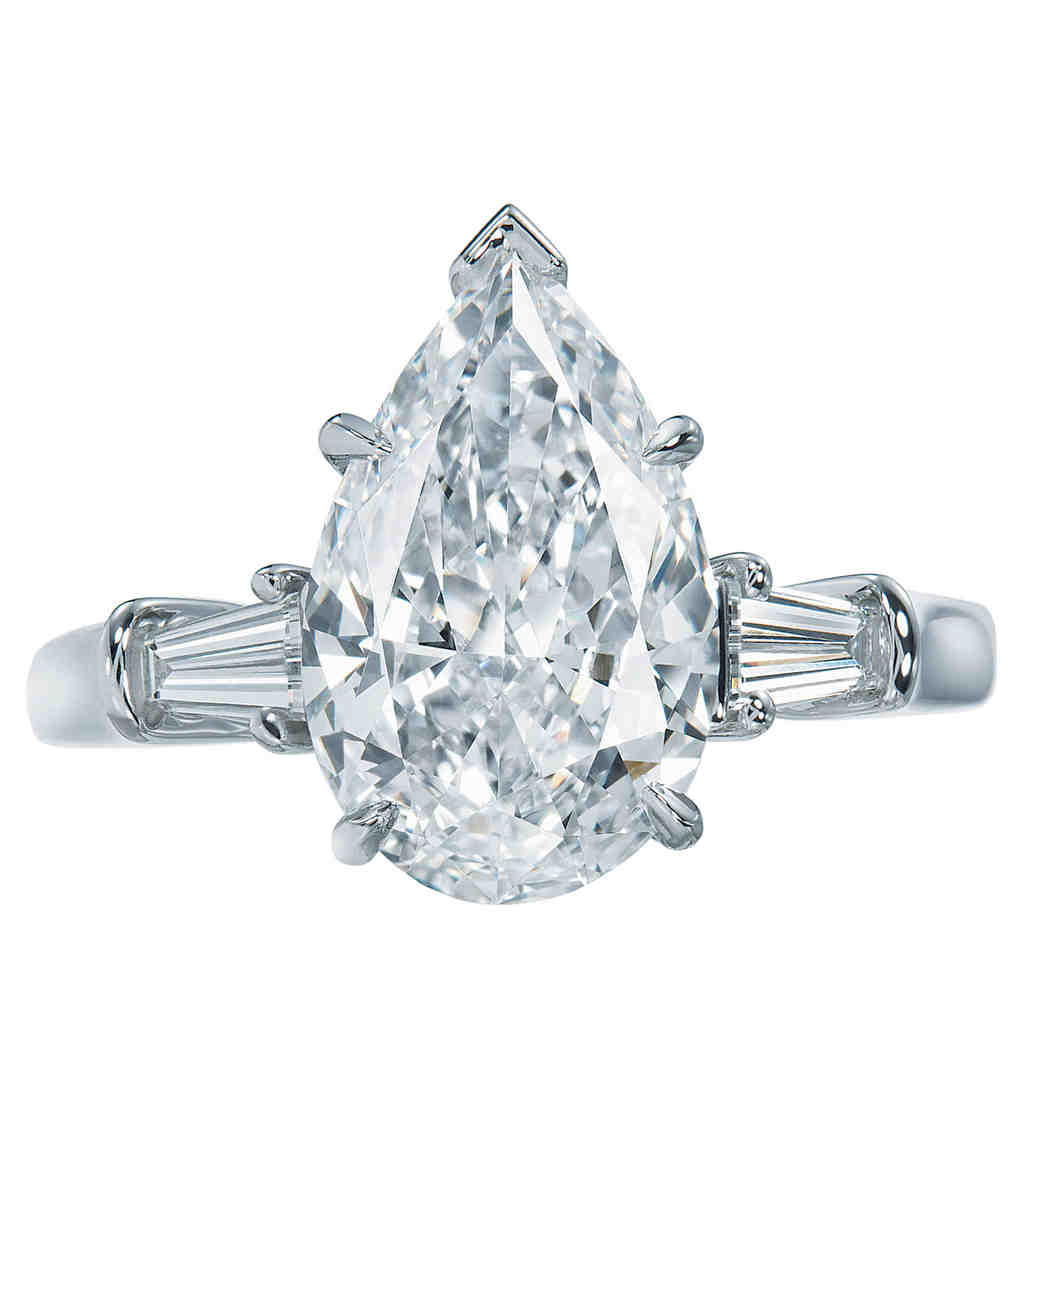 msw_win10_harry_winston_pear.jpg